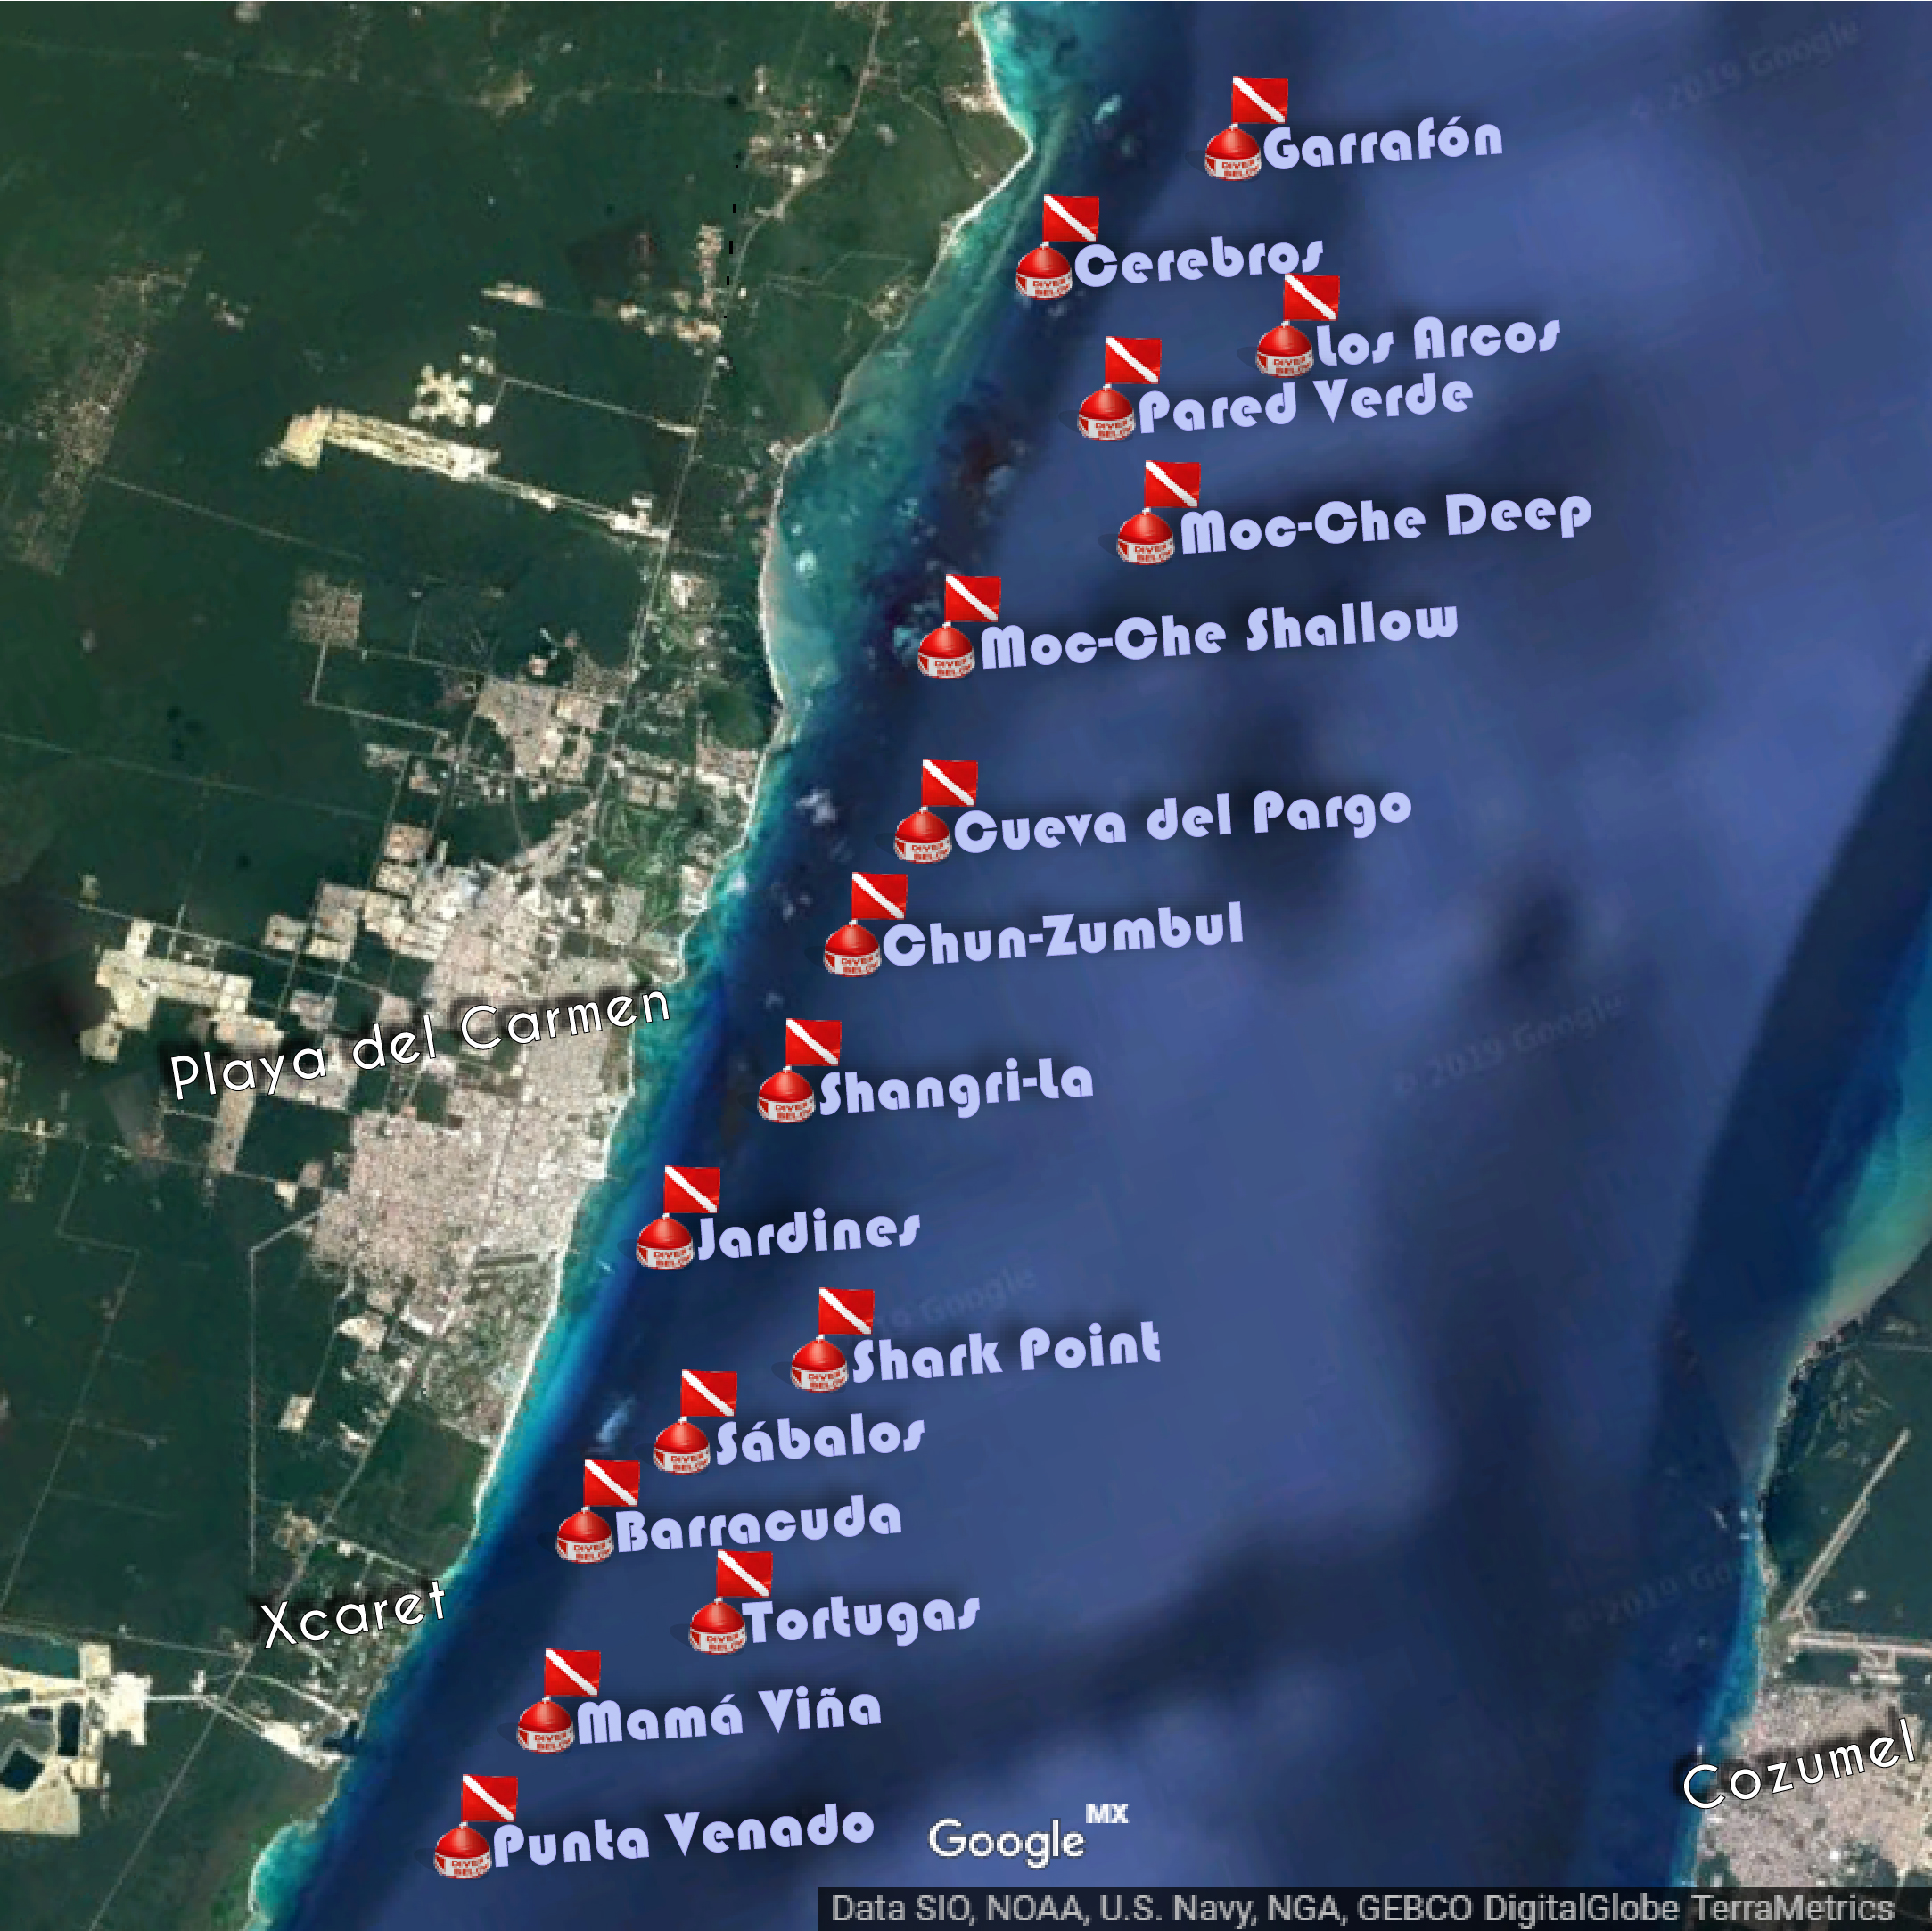 Playa Del Carmen Dive Sites